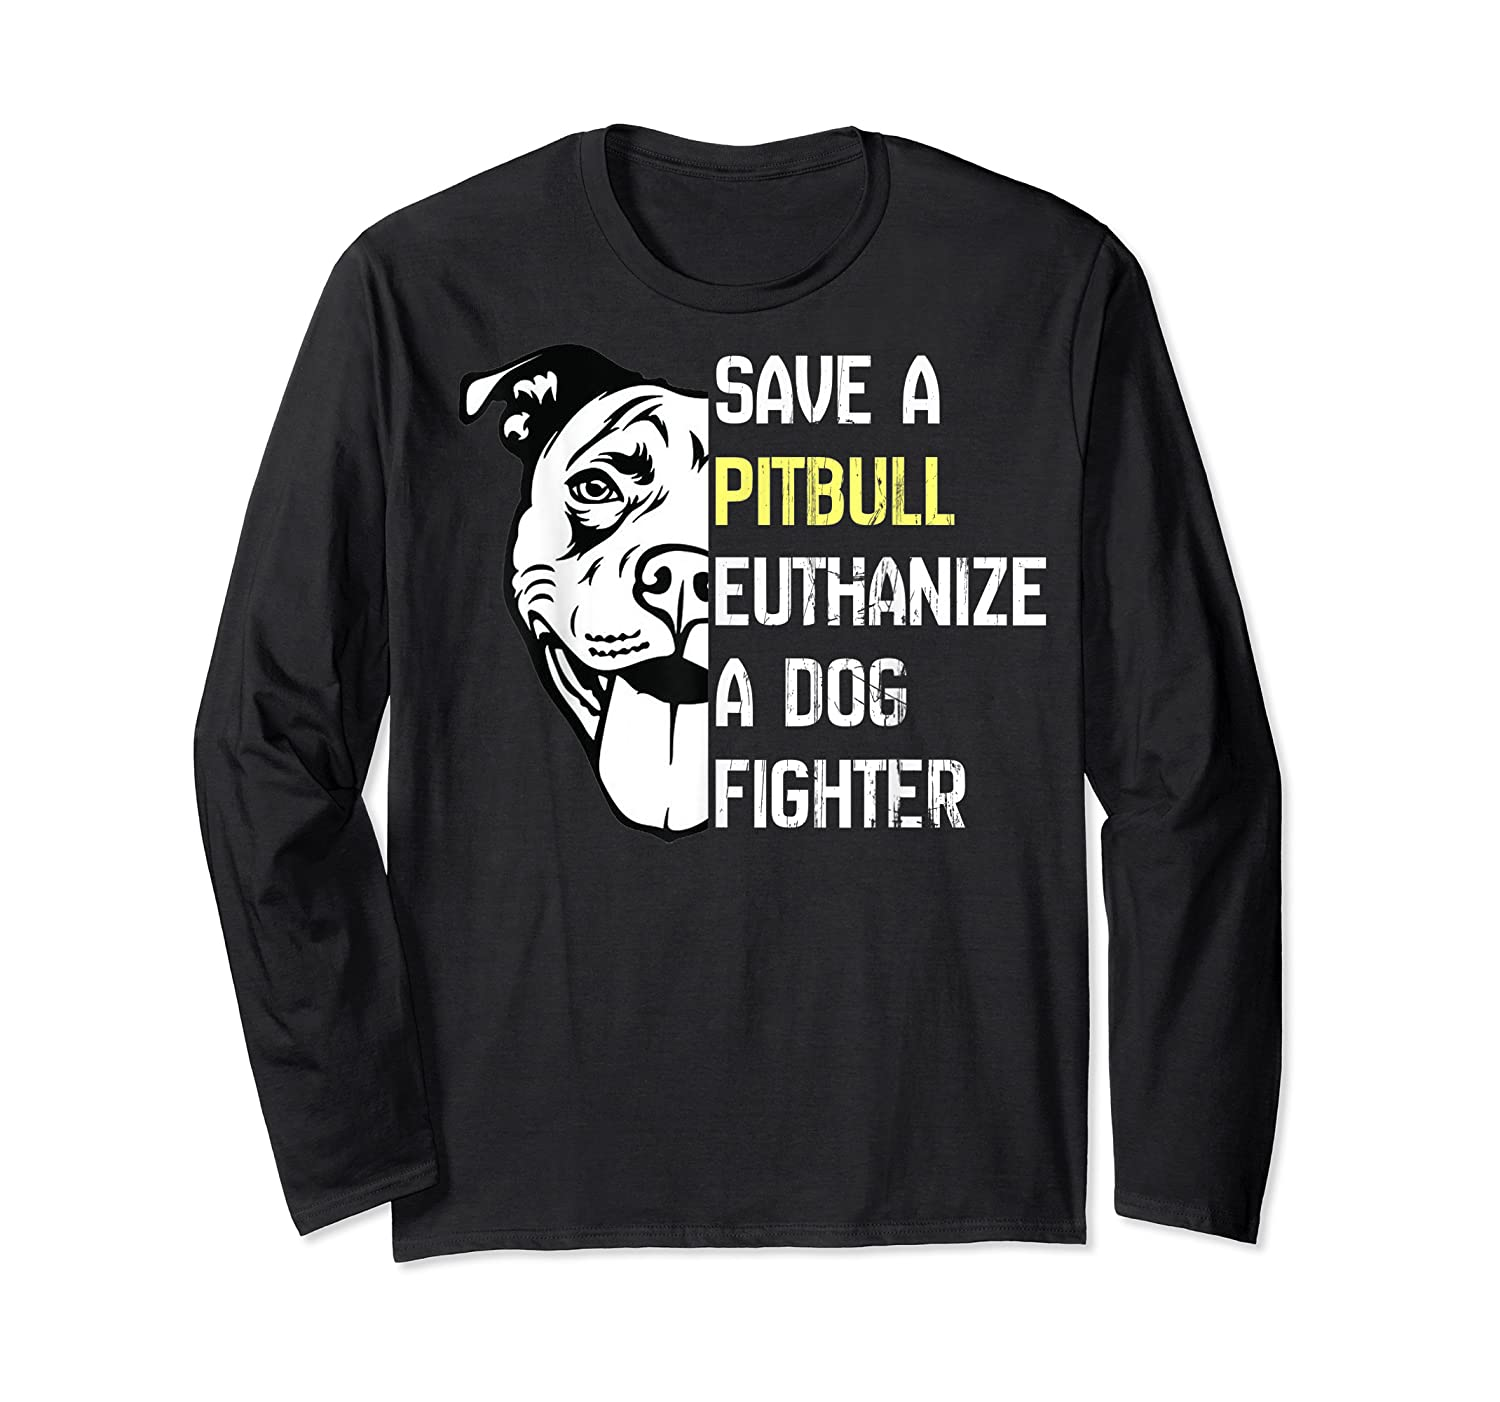 Save A Pitbull Euthanize A Dog Fighter Cool Shirts Long Sleeve T-shirt